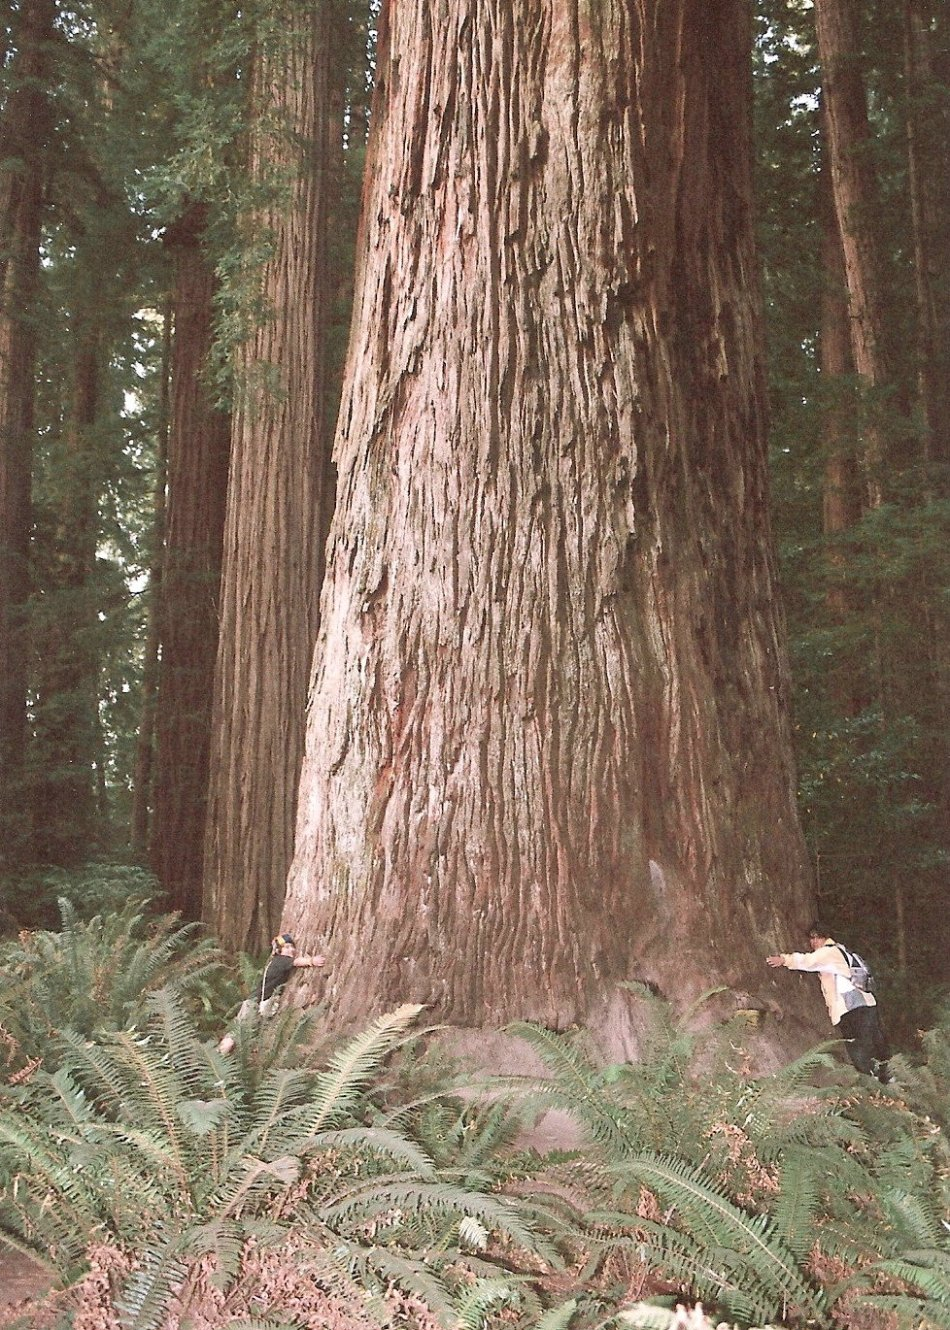 FRANKIE AND ME HUGGING A GIANT REDWOOD